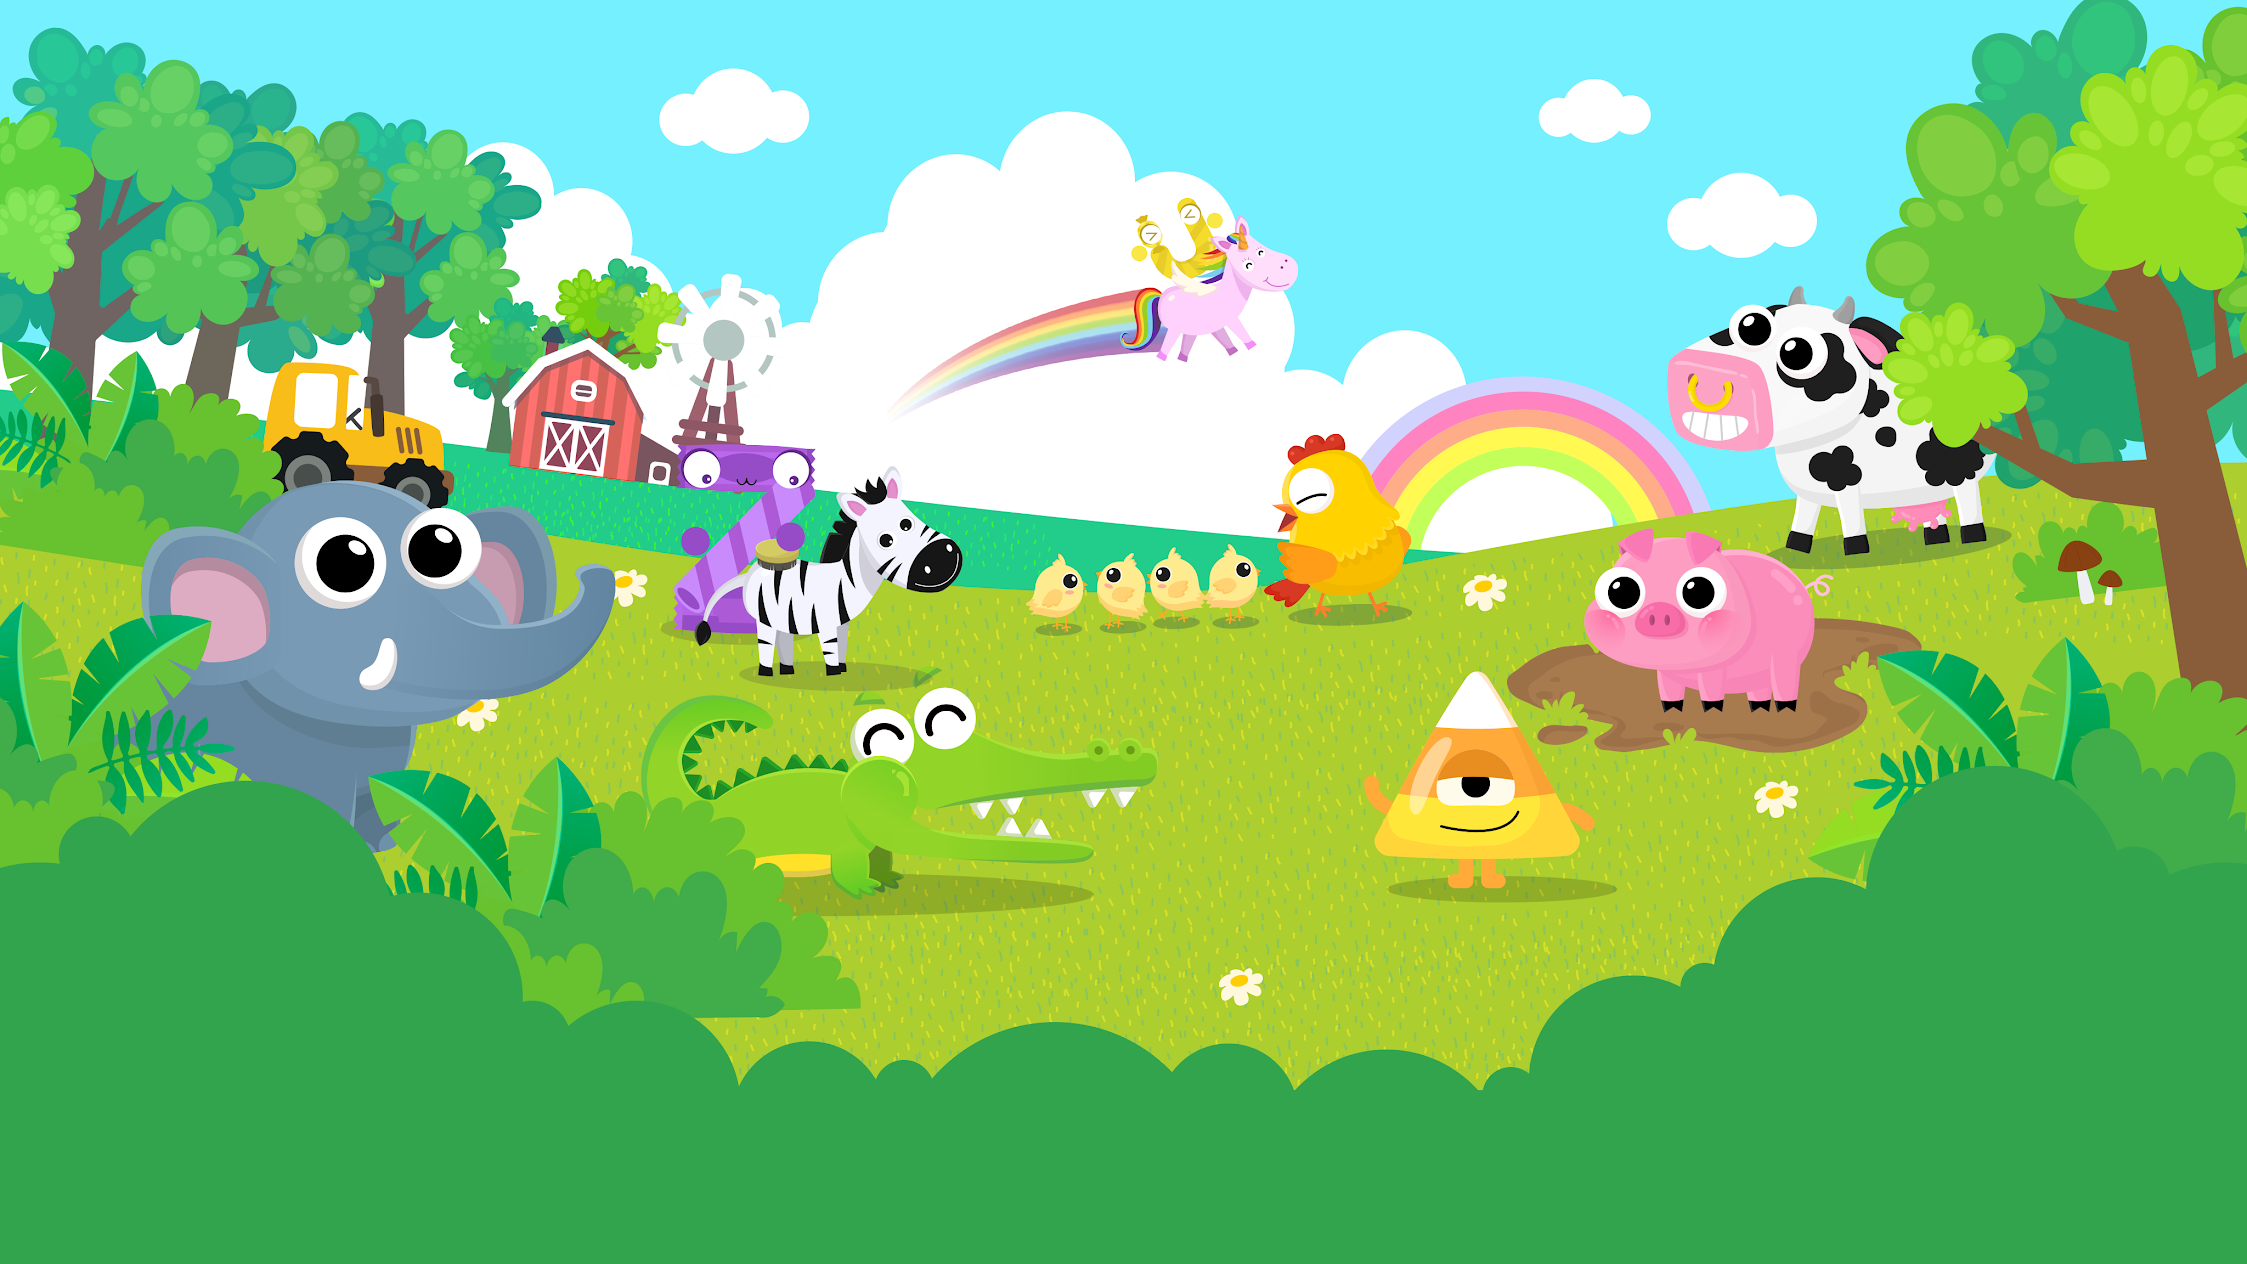 Candybots Kids Game App Android Apps on Google Play